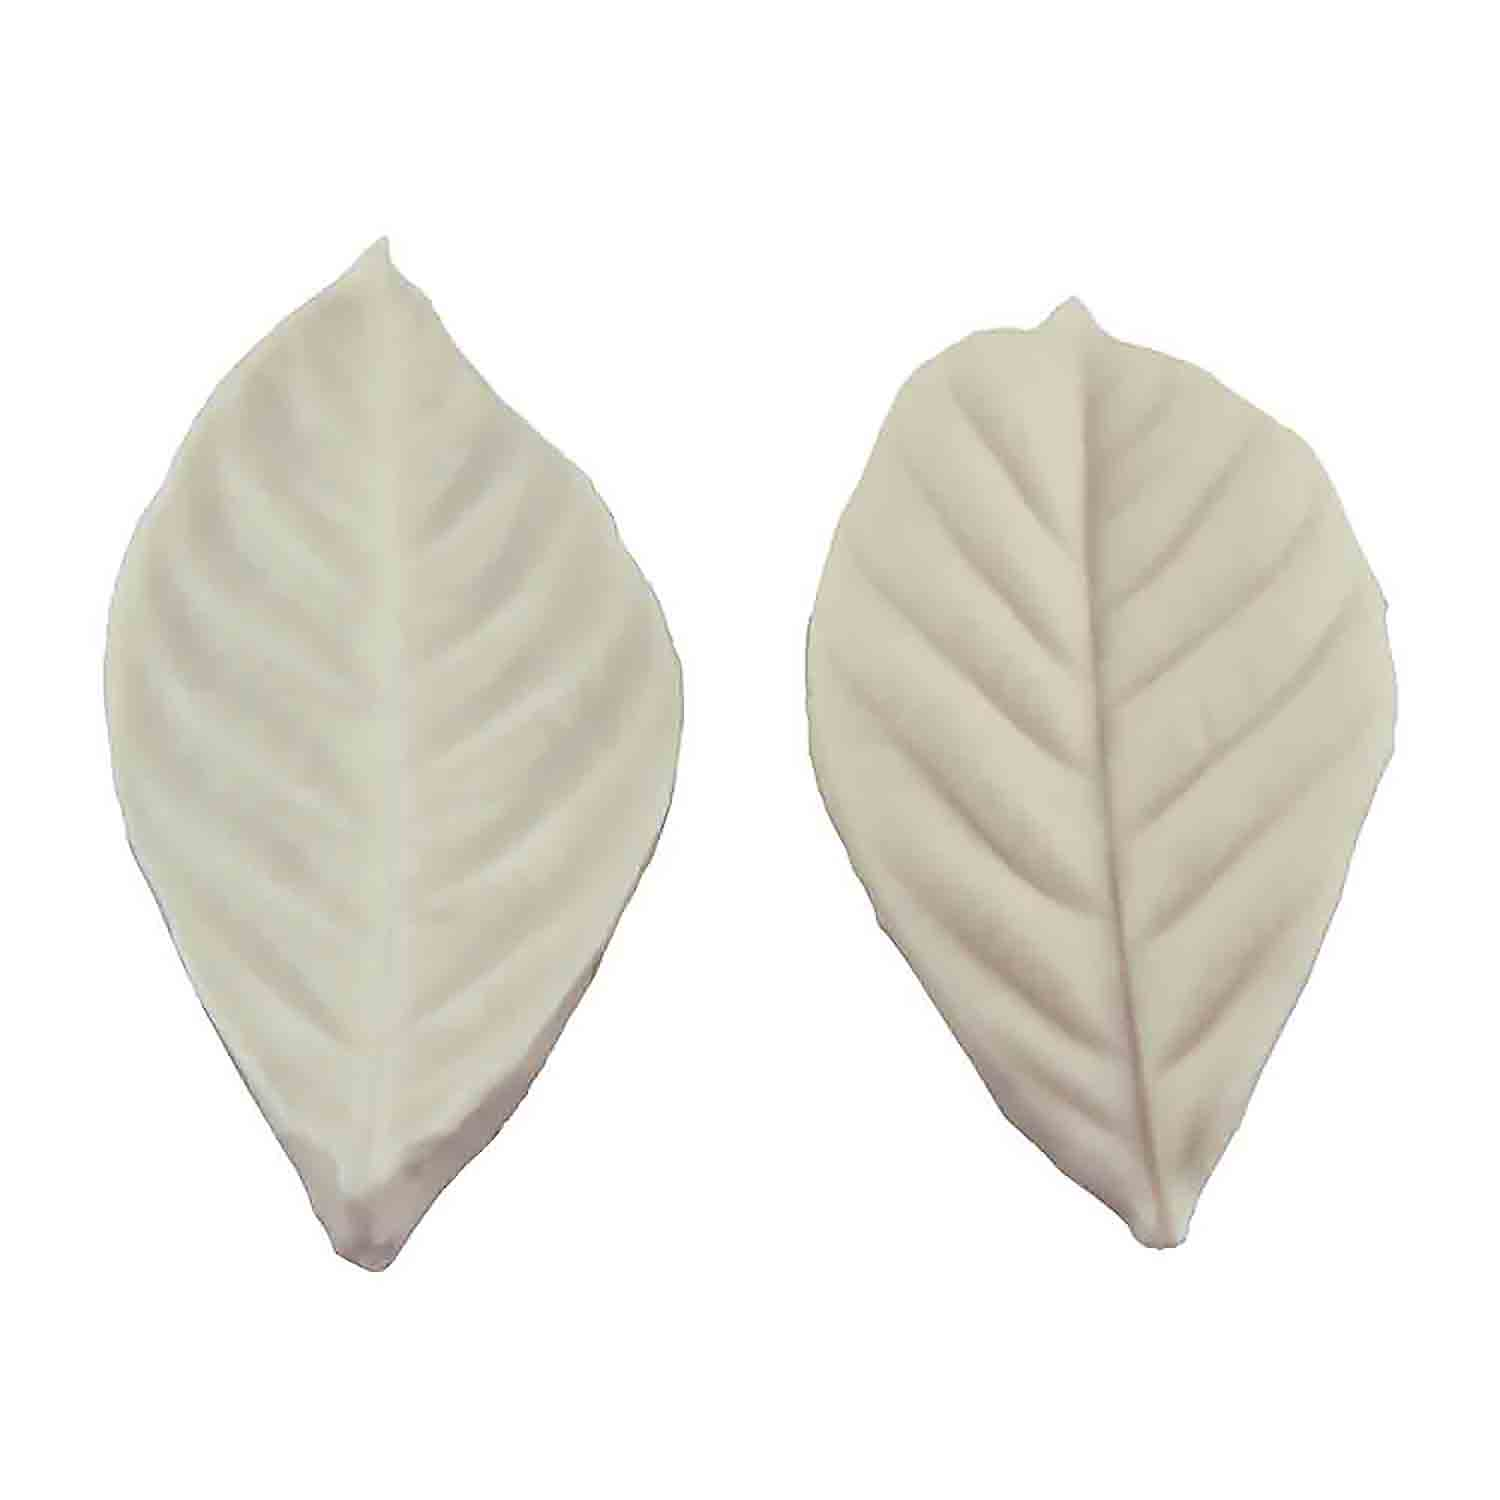 Large Gardenia Leaf Simply Nature Veiner Set